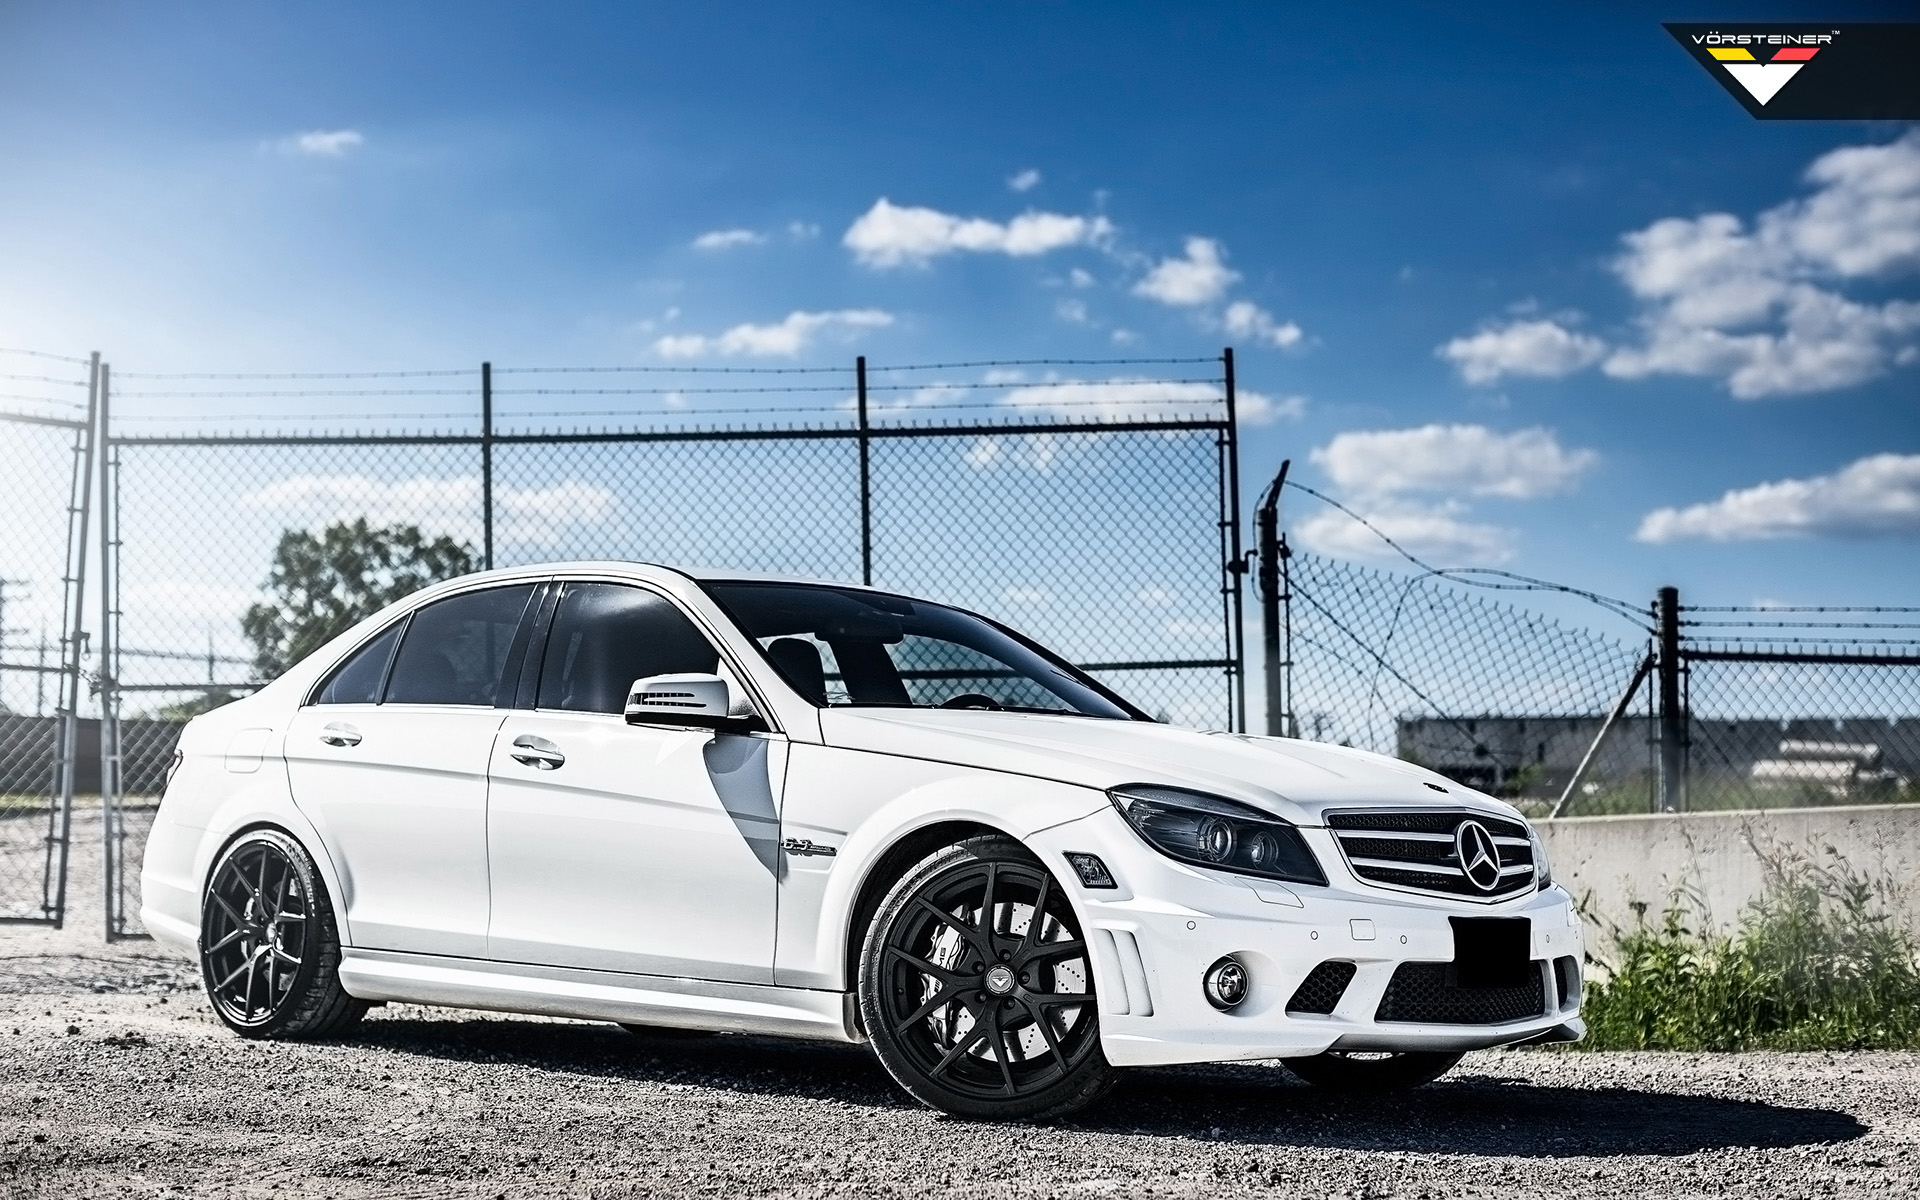 2014 Vorsteiner Mercedes Benz C63 Amg Wallpaper Hd Car Wallpapers Id 4663